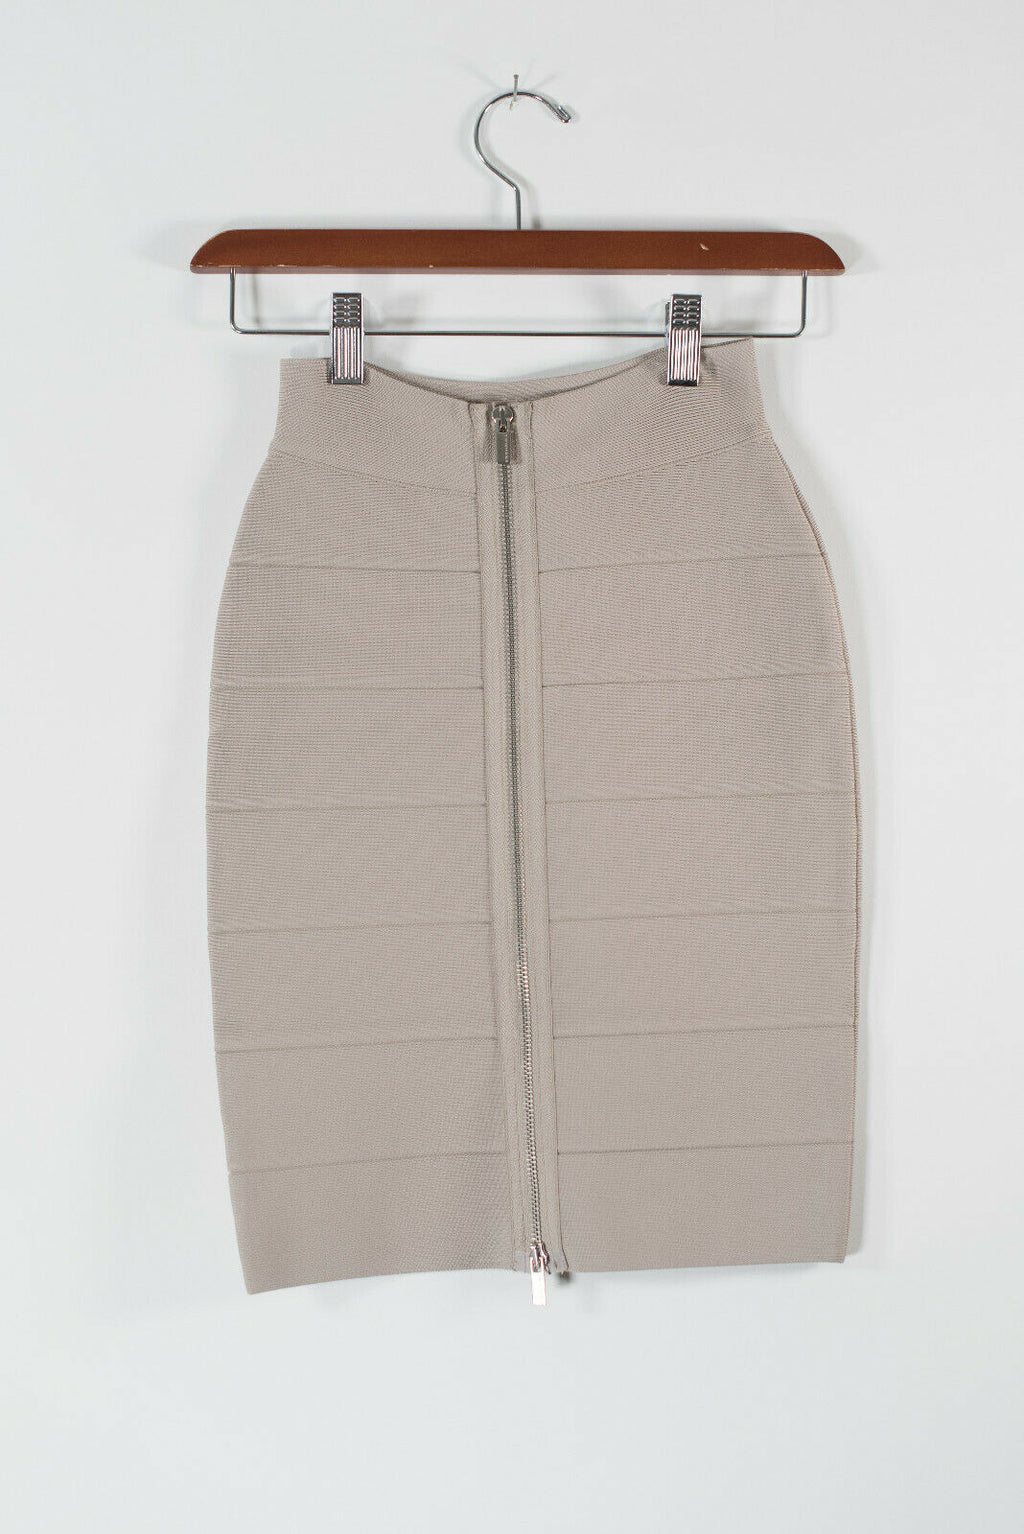 BCBG MaxAzria Womens Size XXS Beige Bandage Skirt Stretch Knit Full Back Zip